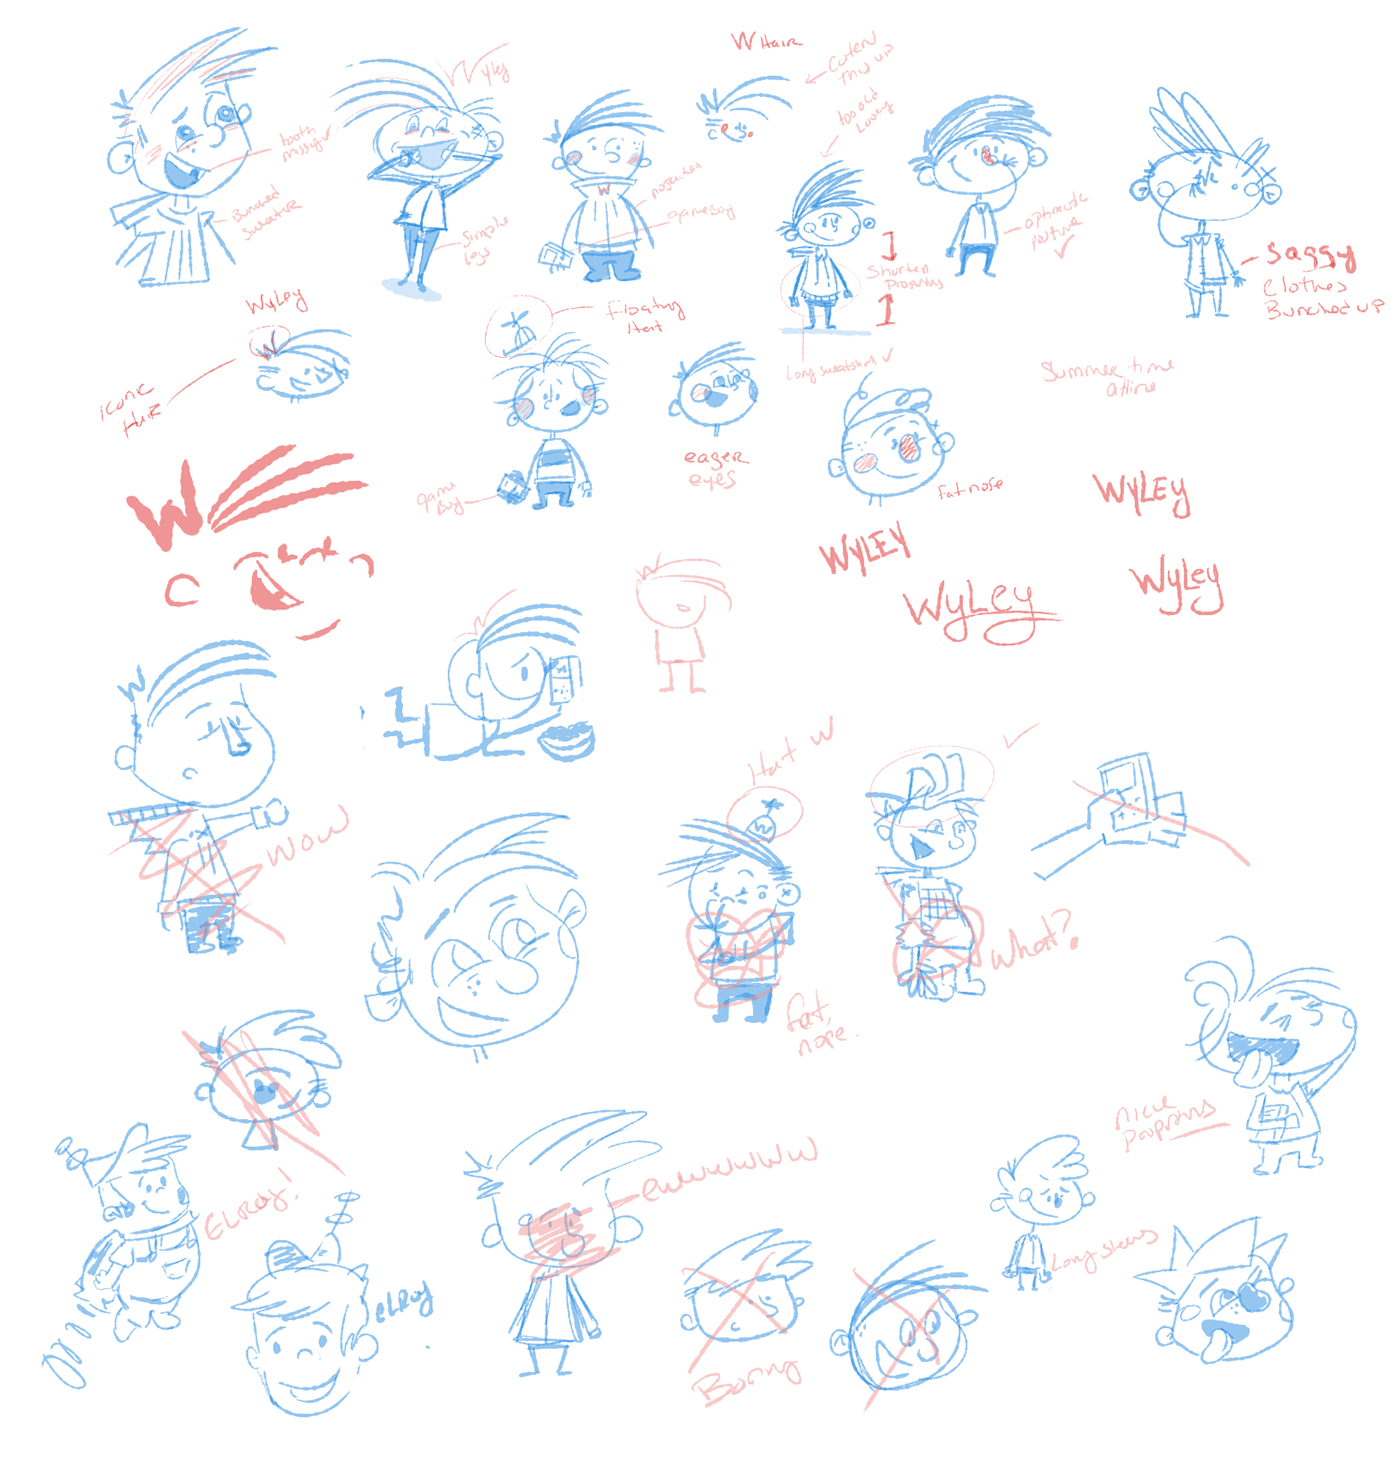 wyley-kirk.wallace-sketches.png